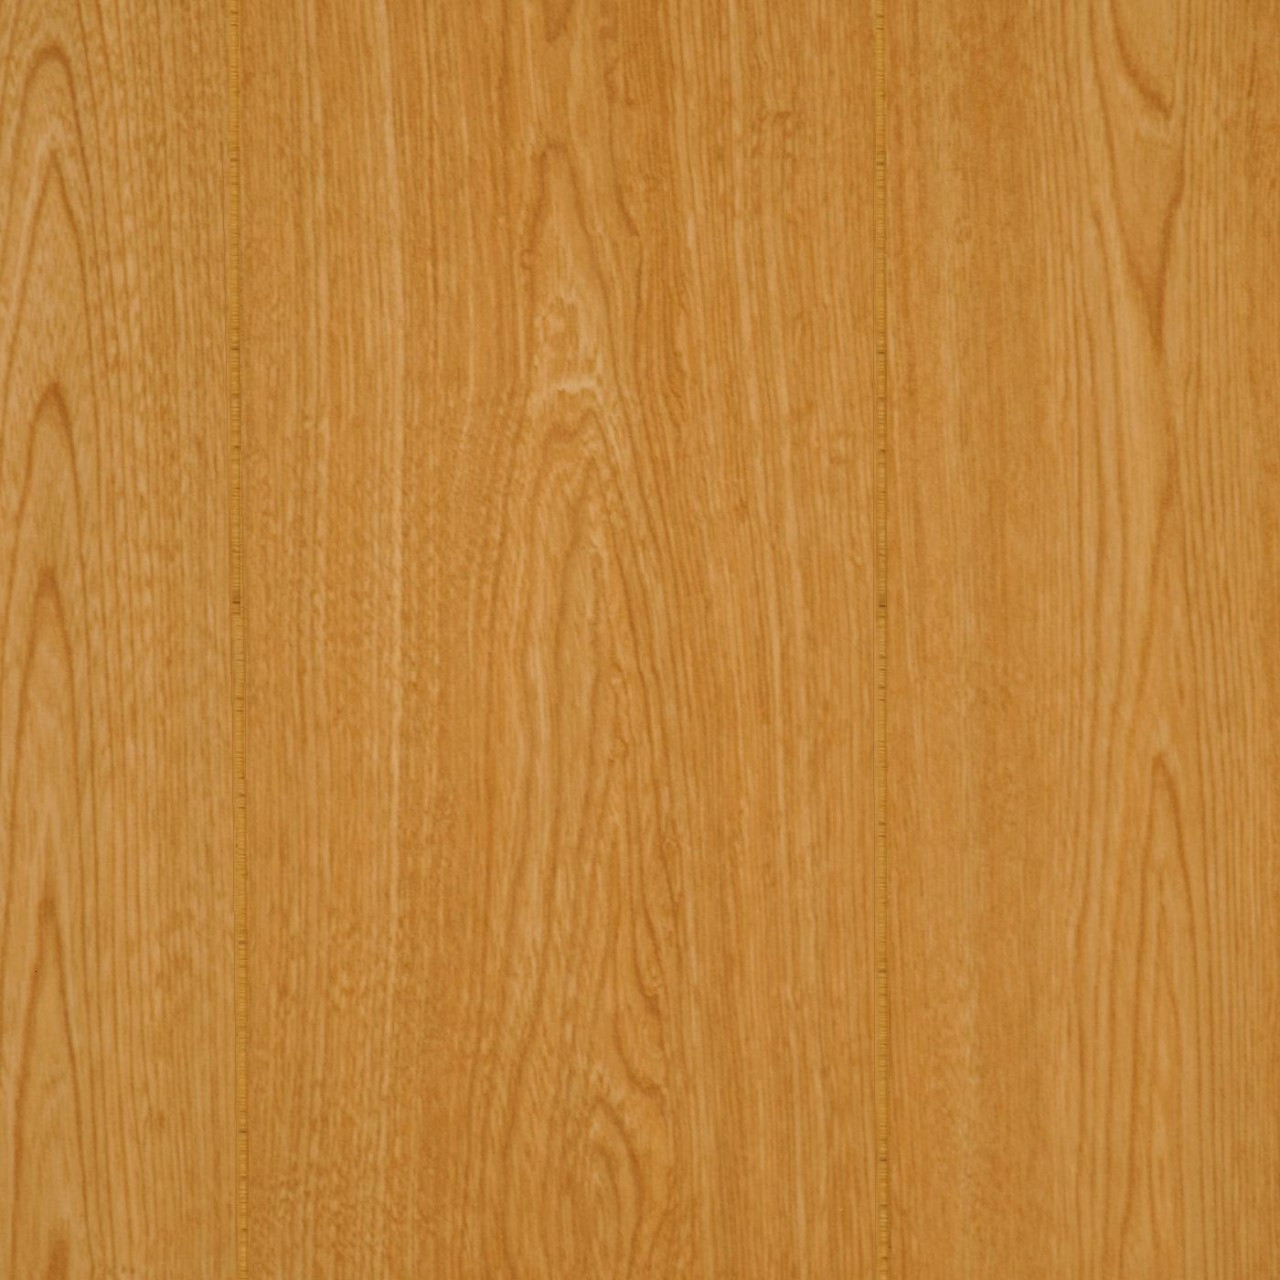 Oak Wall Paneling : Wood paneling empire oak random plank panels